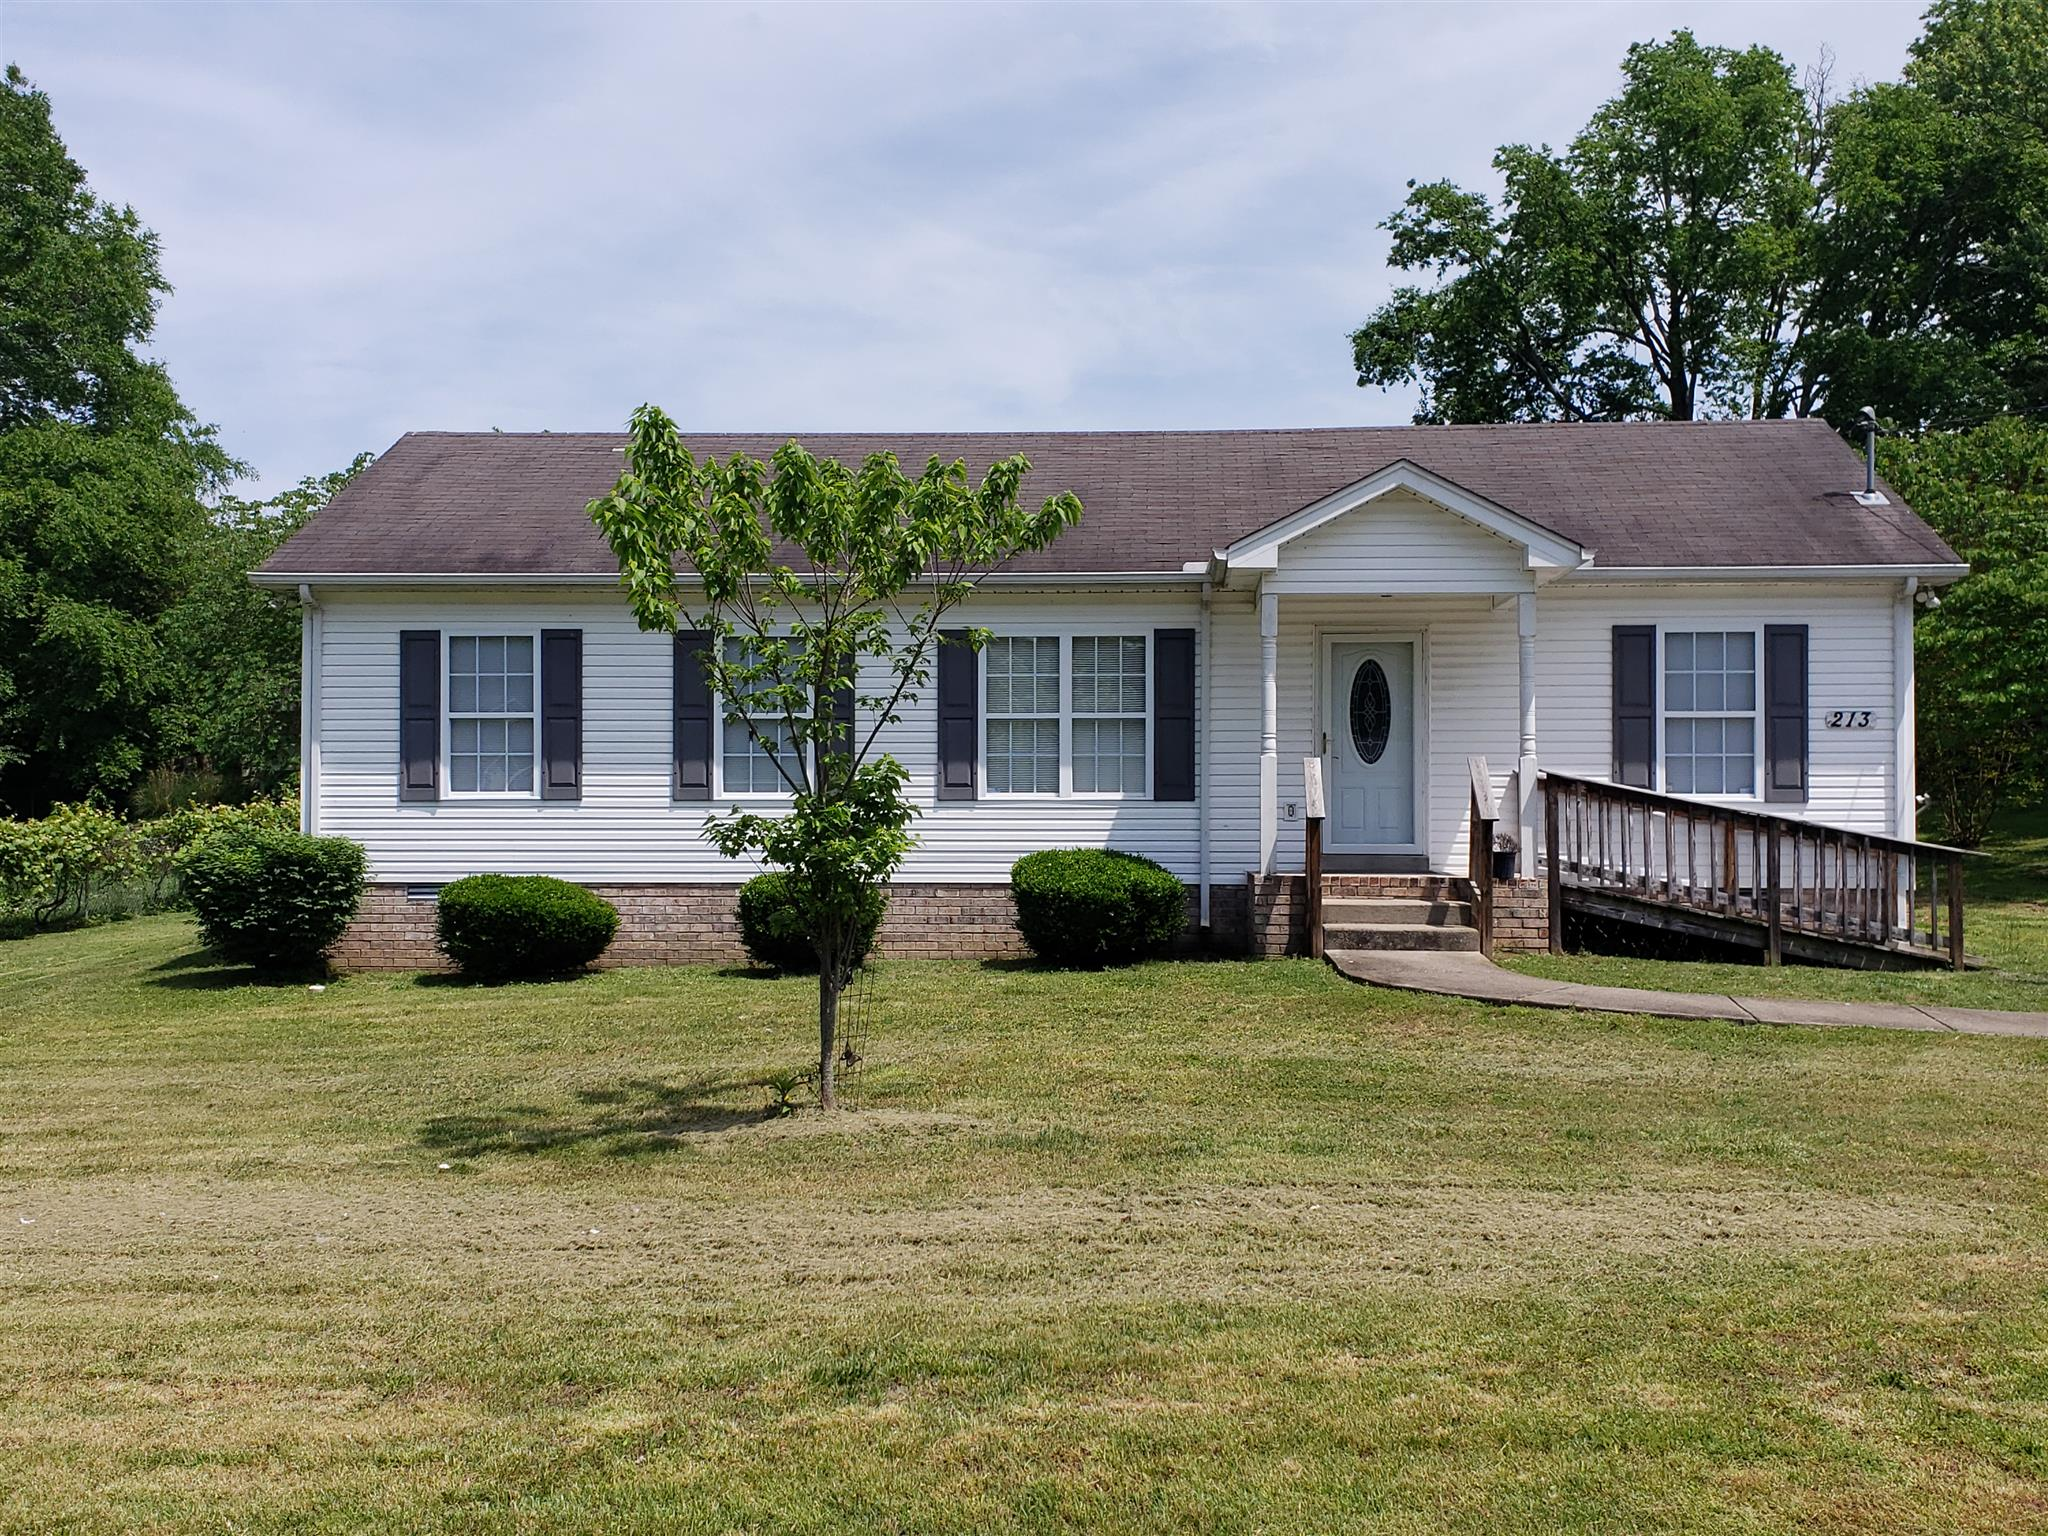 213 Bate Ave, Gallatin in Sumner County County, TN 37066 Home for Sale